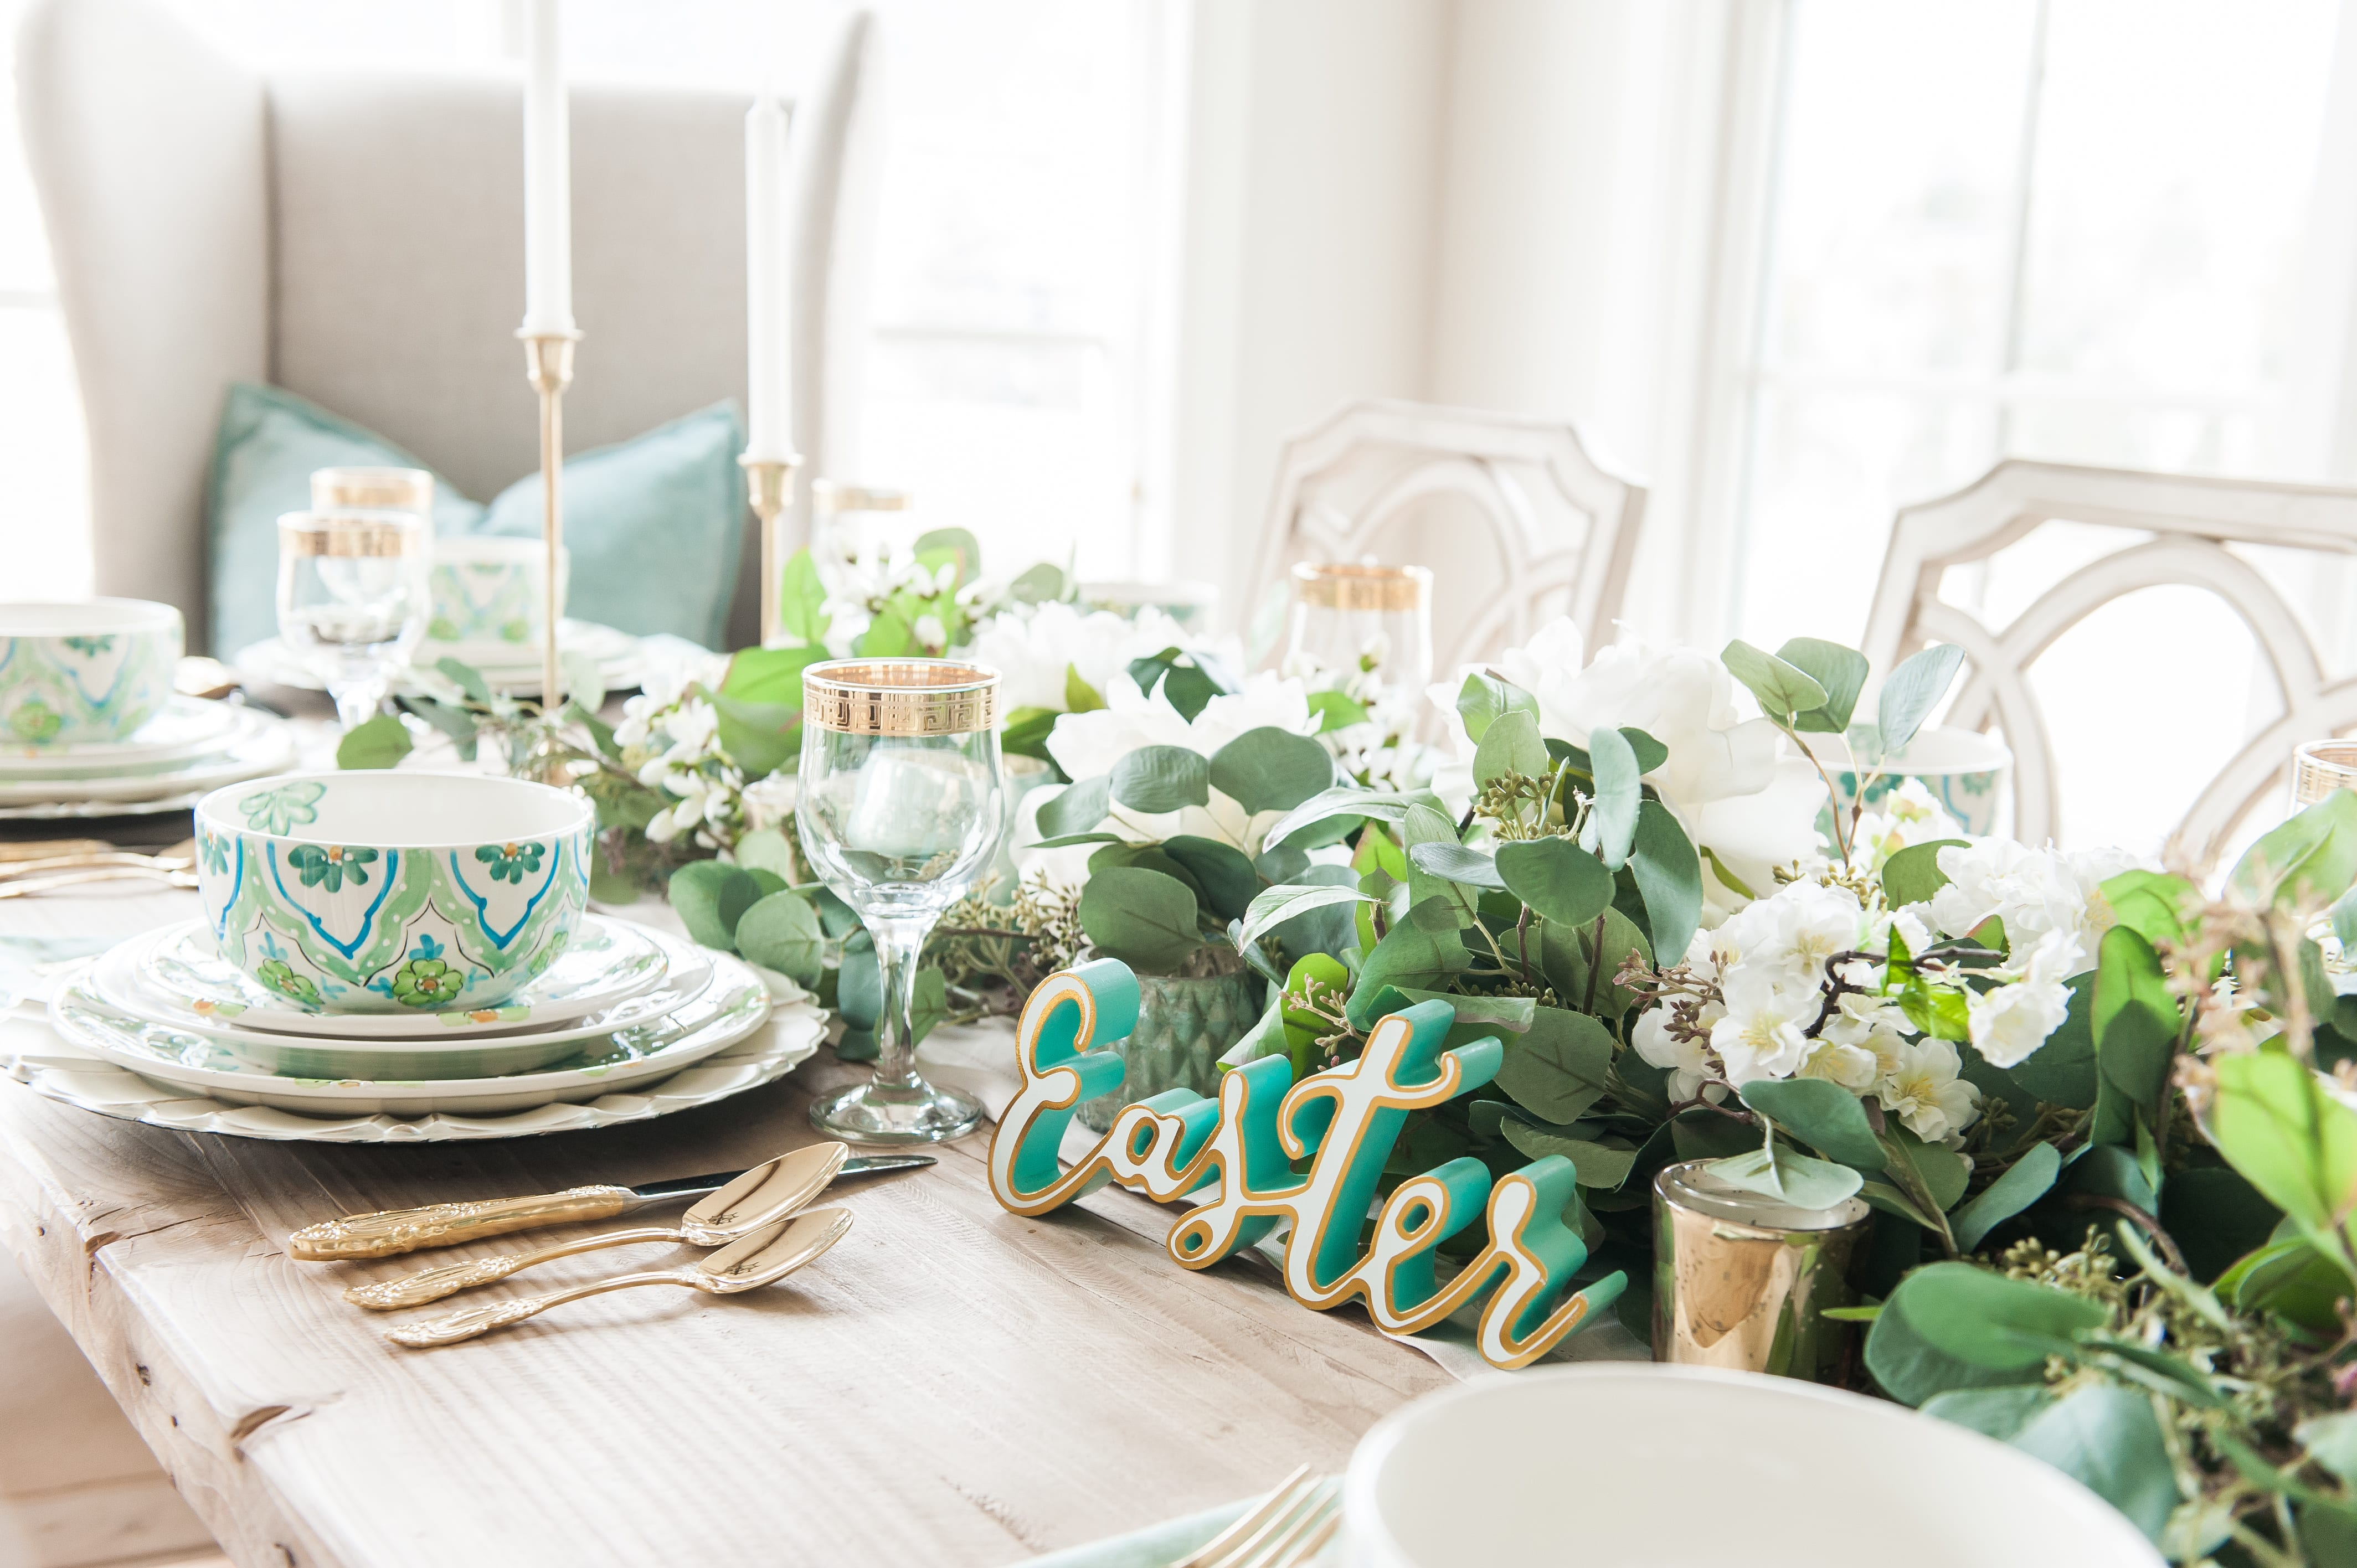 Tablescape spring Tablescapes st. patricks day table decor blue green and white table setting dinnerware easter tablescape easter dinner table dining room table setting place setting table decor idea